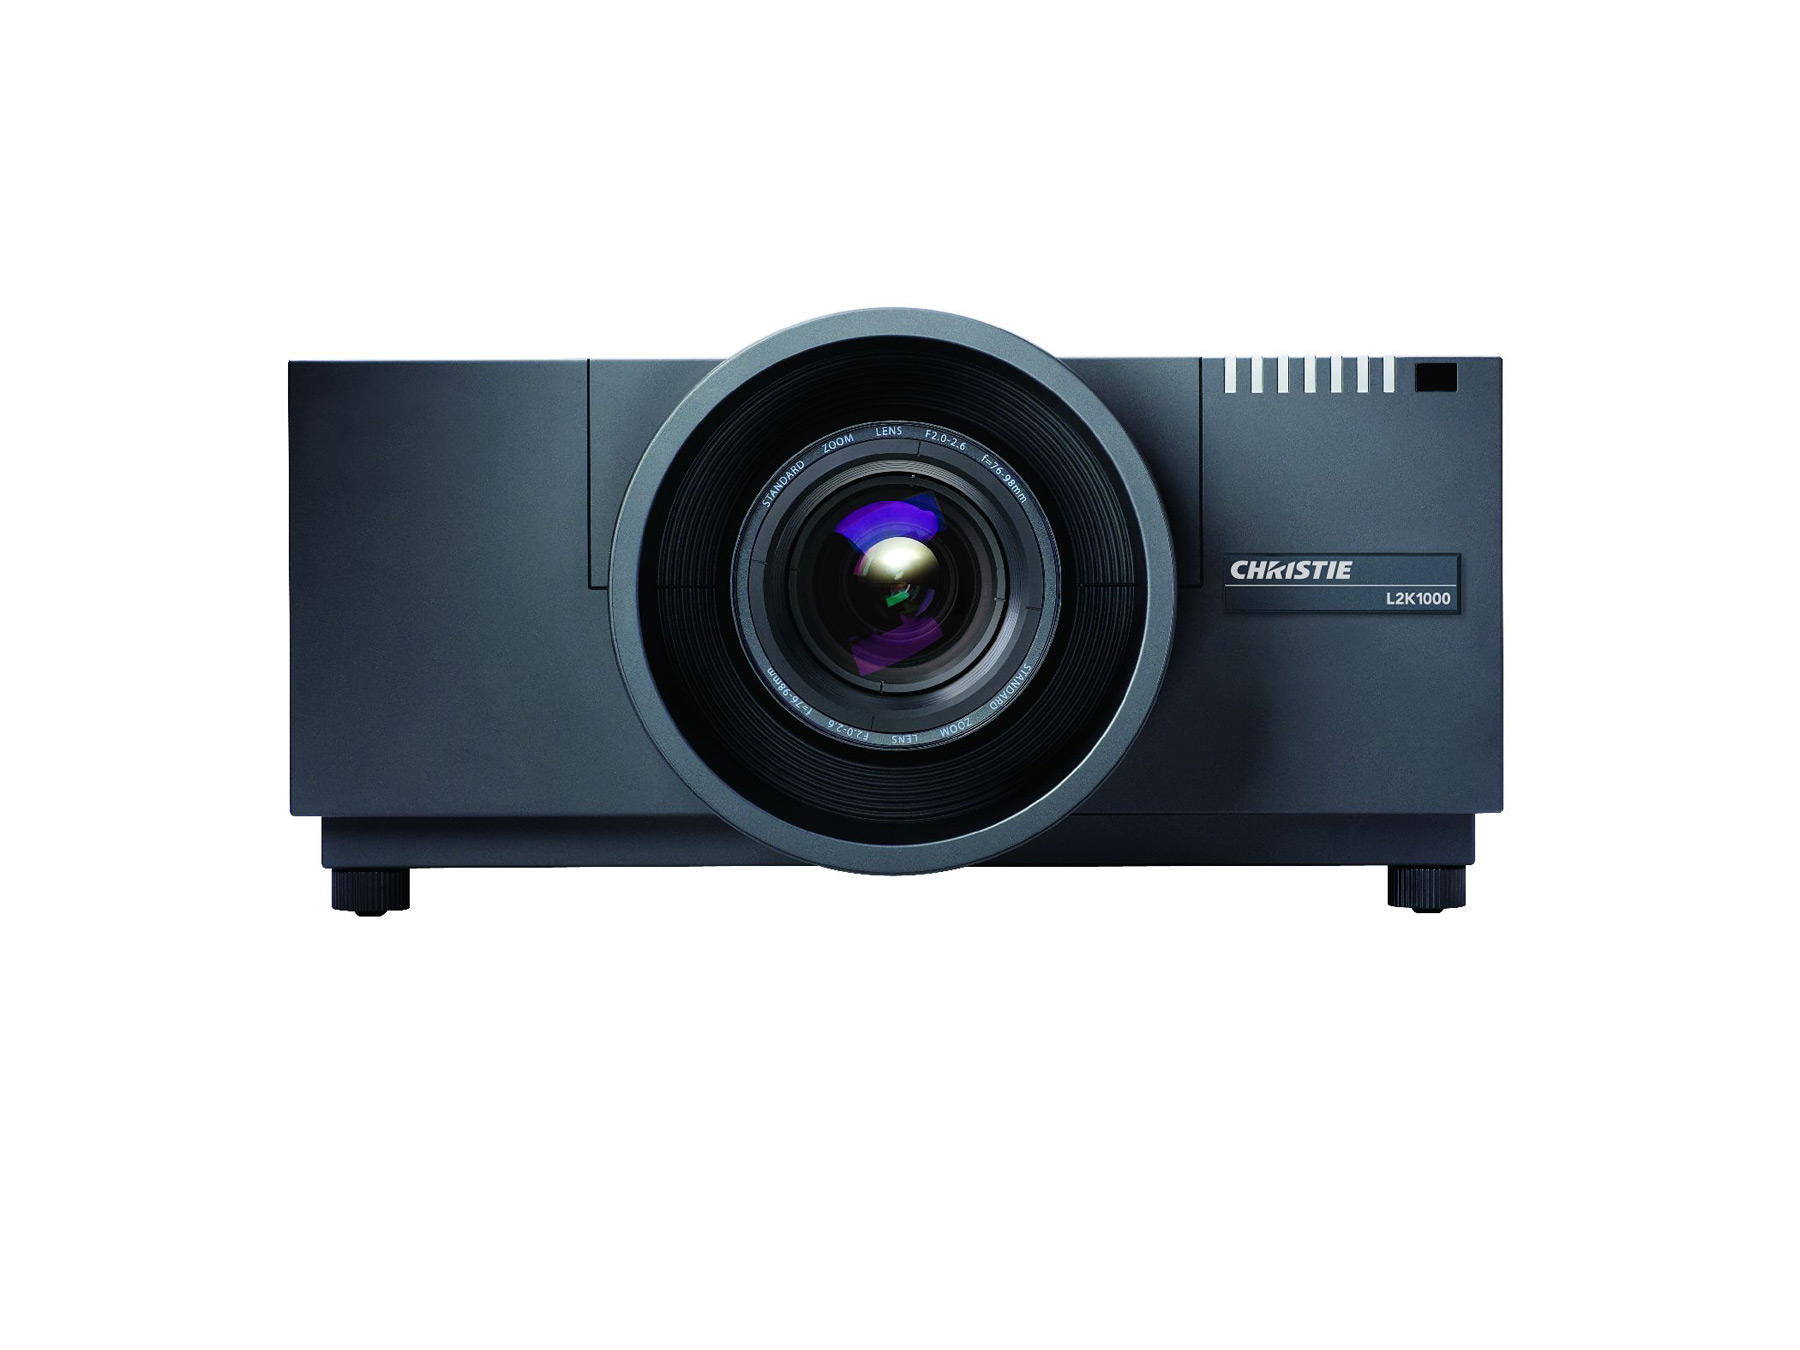 /globalassets/.catalog/products/images/christie-l2k1000/gallery/christie-l2k-1000-3-lcd-digital-projector-image-2.jpg